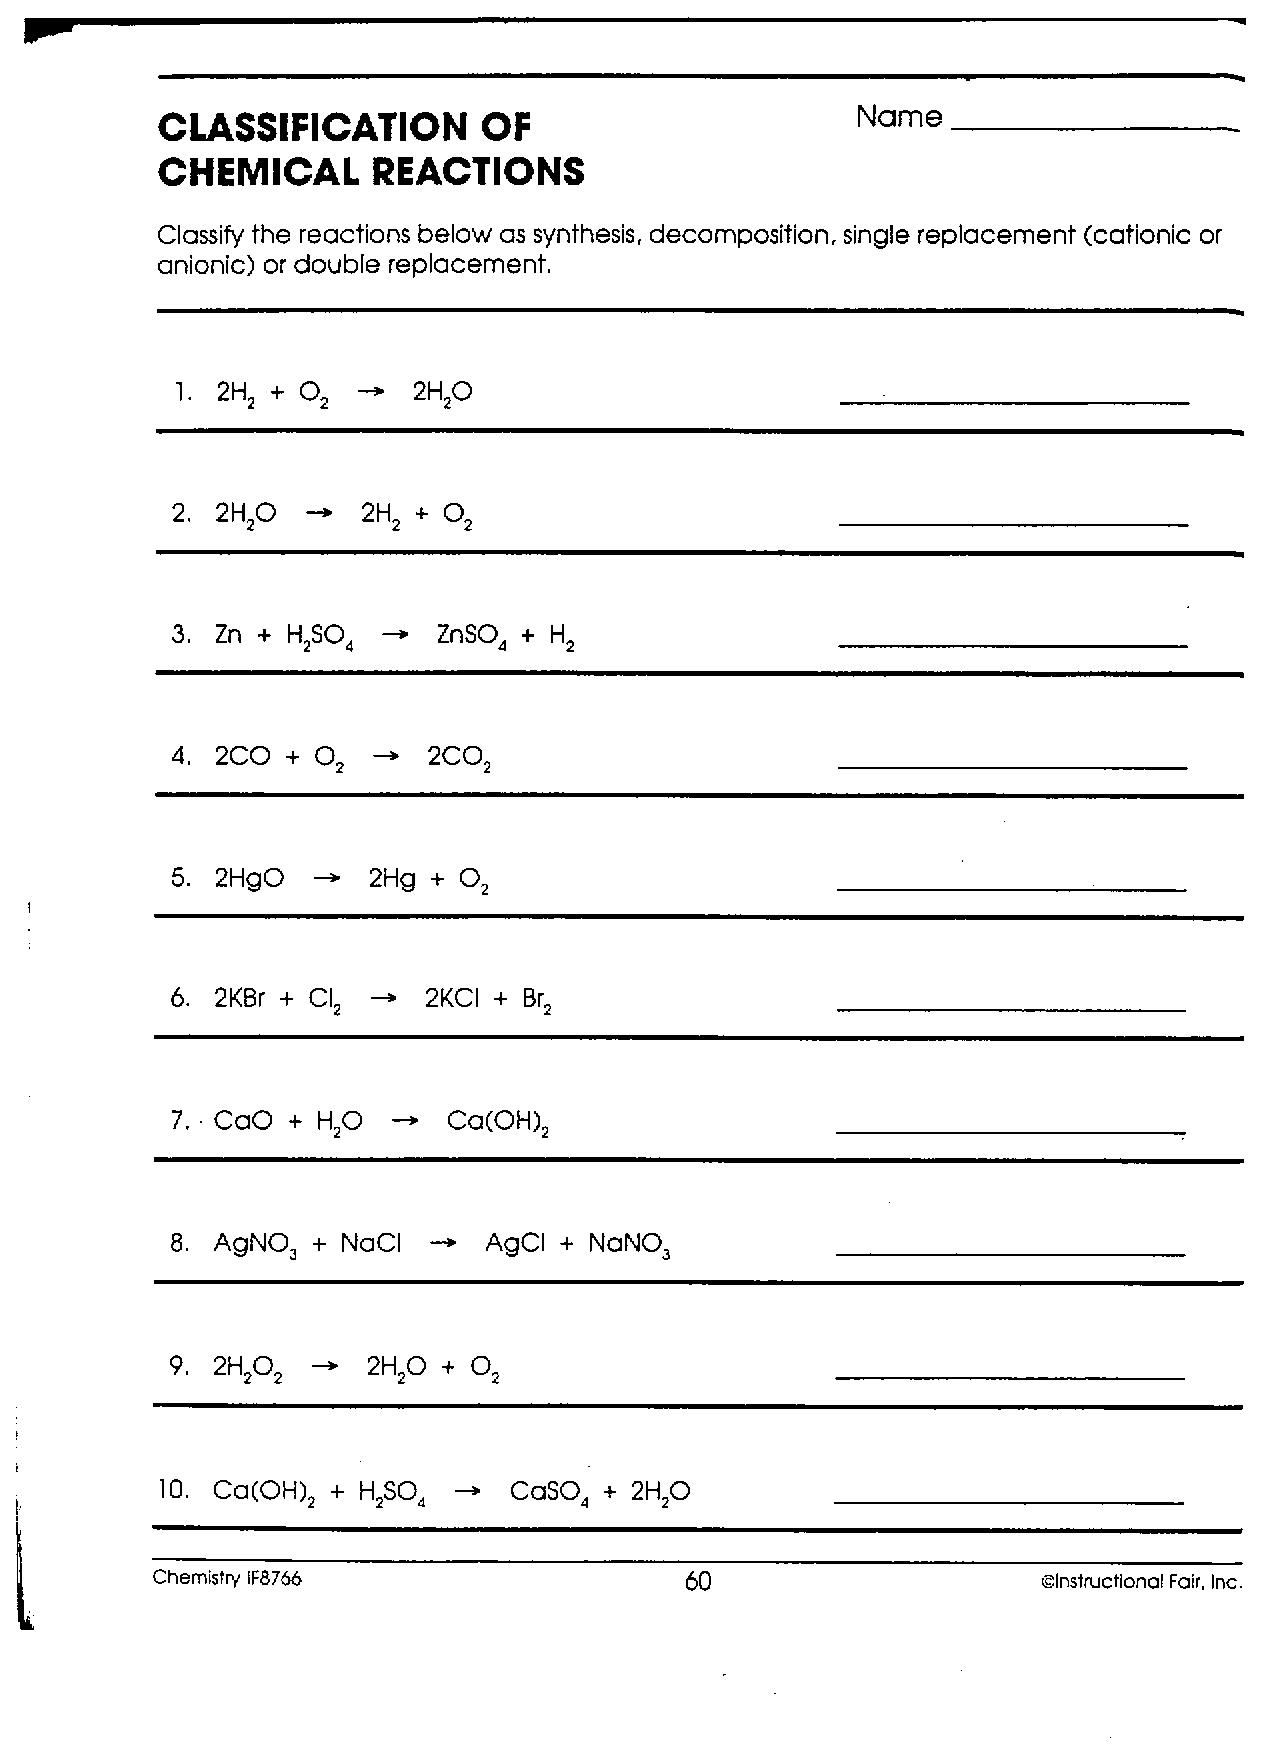 Classifying Chemical Reactions Worksheet - Secretlinkbuilding